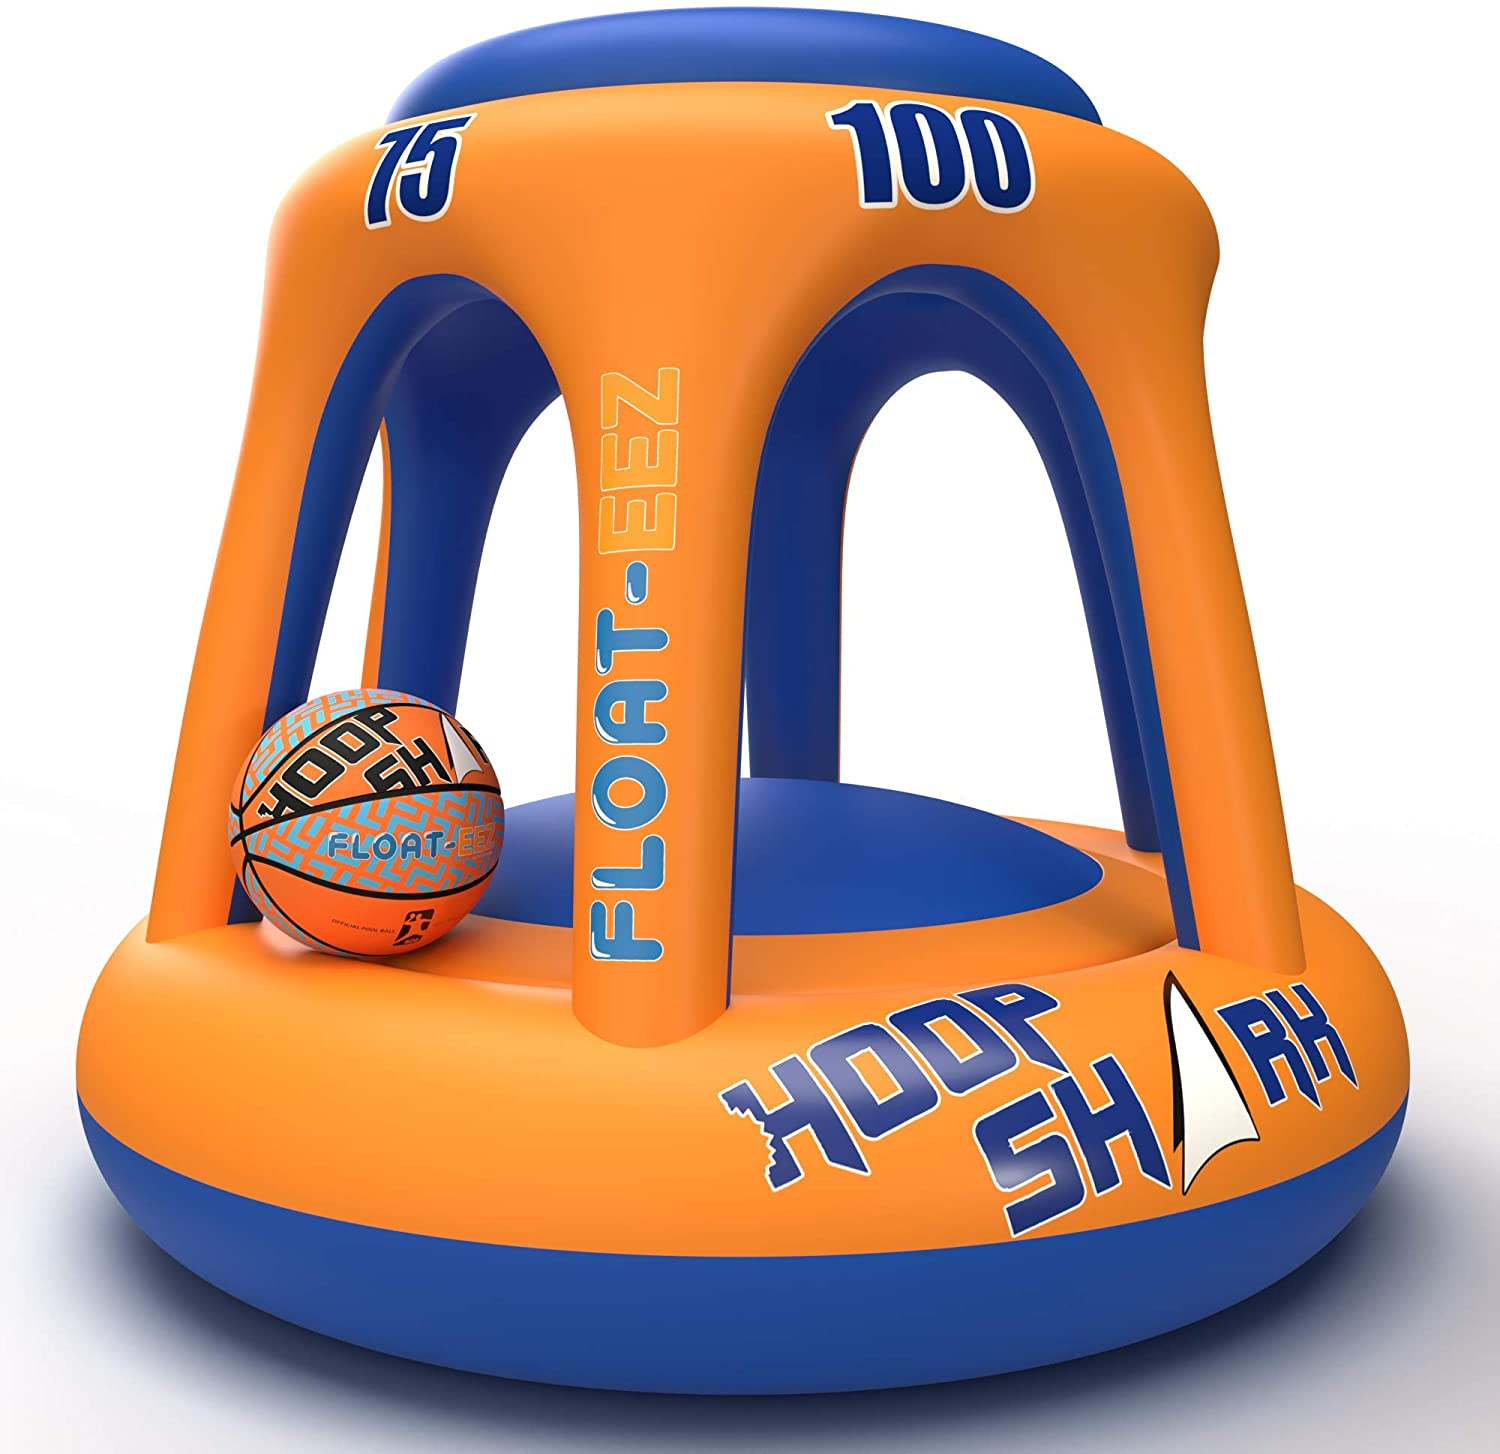 Hoop Shark Swimming Pool Basketball Hoop Set